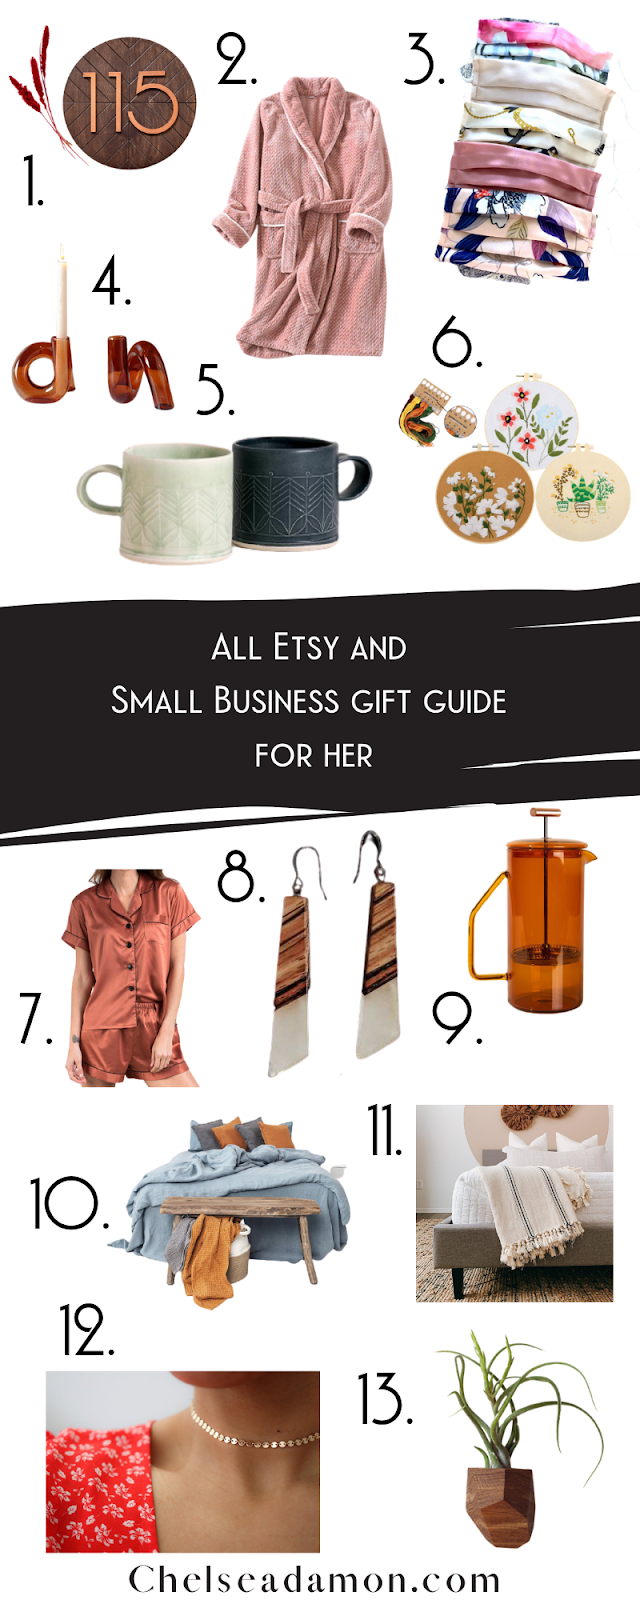 Etsy and Small Business Gift Guide for Her 2020